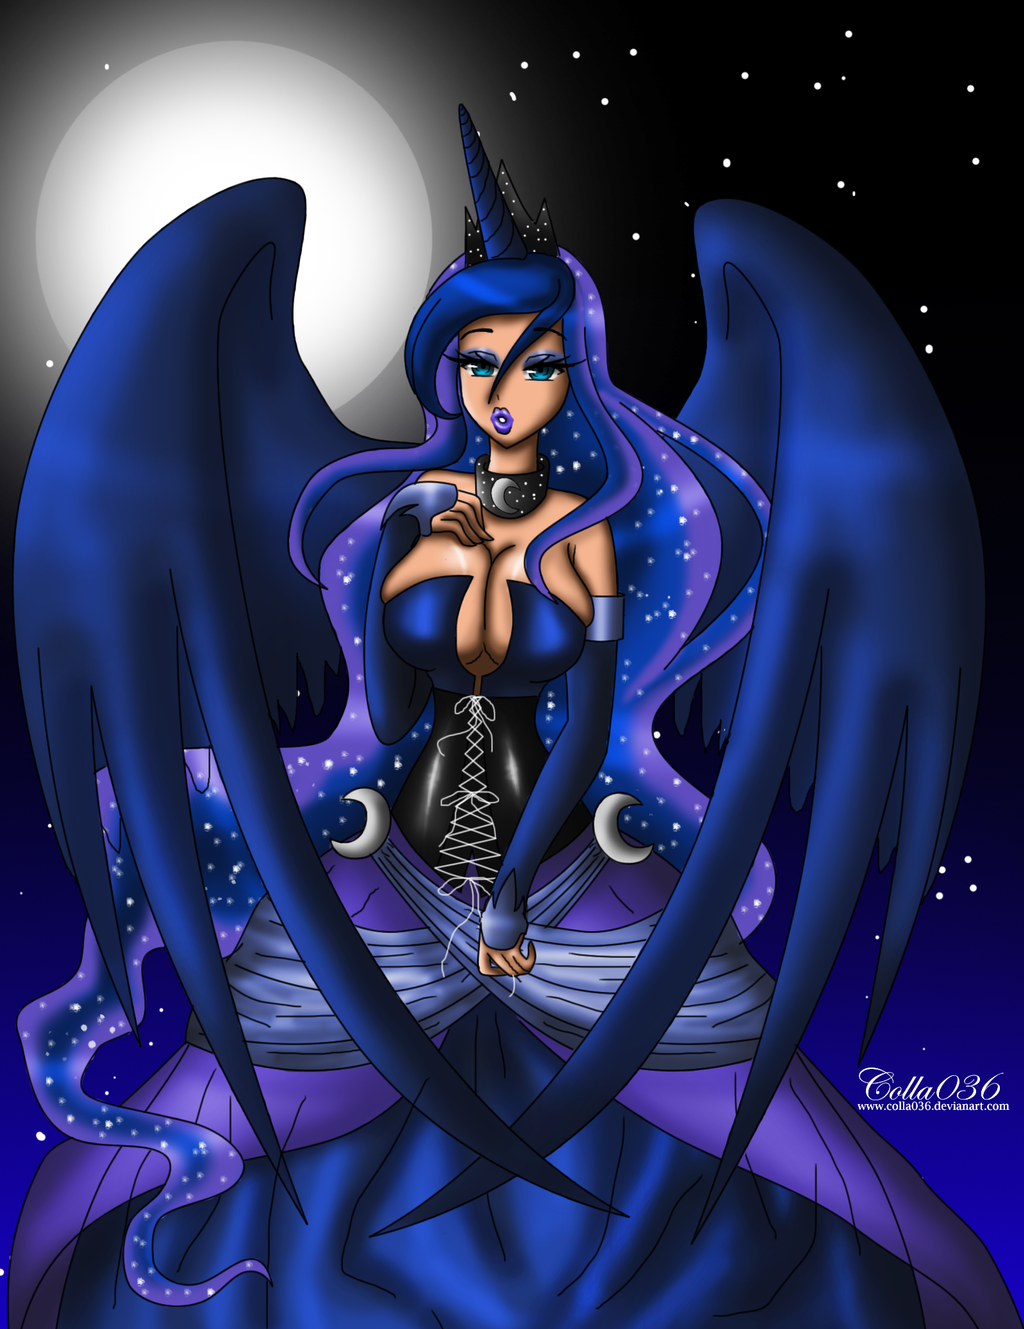 Human Princess Luna By Colla036 On DeviantArt